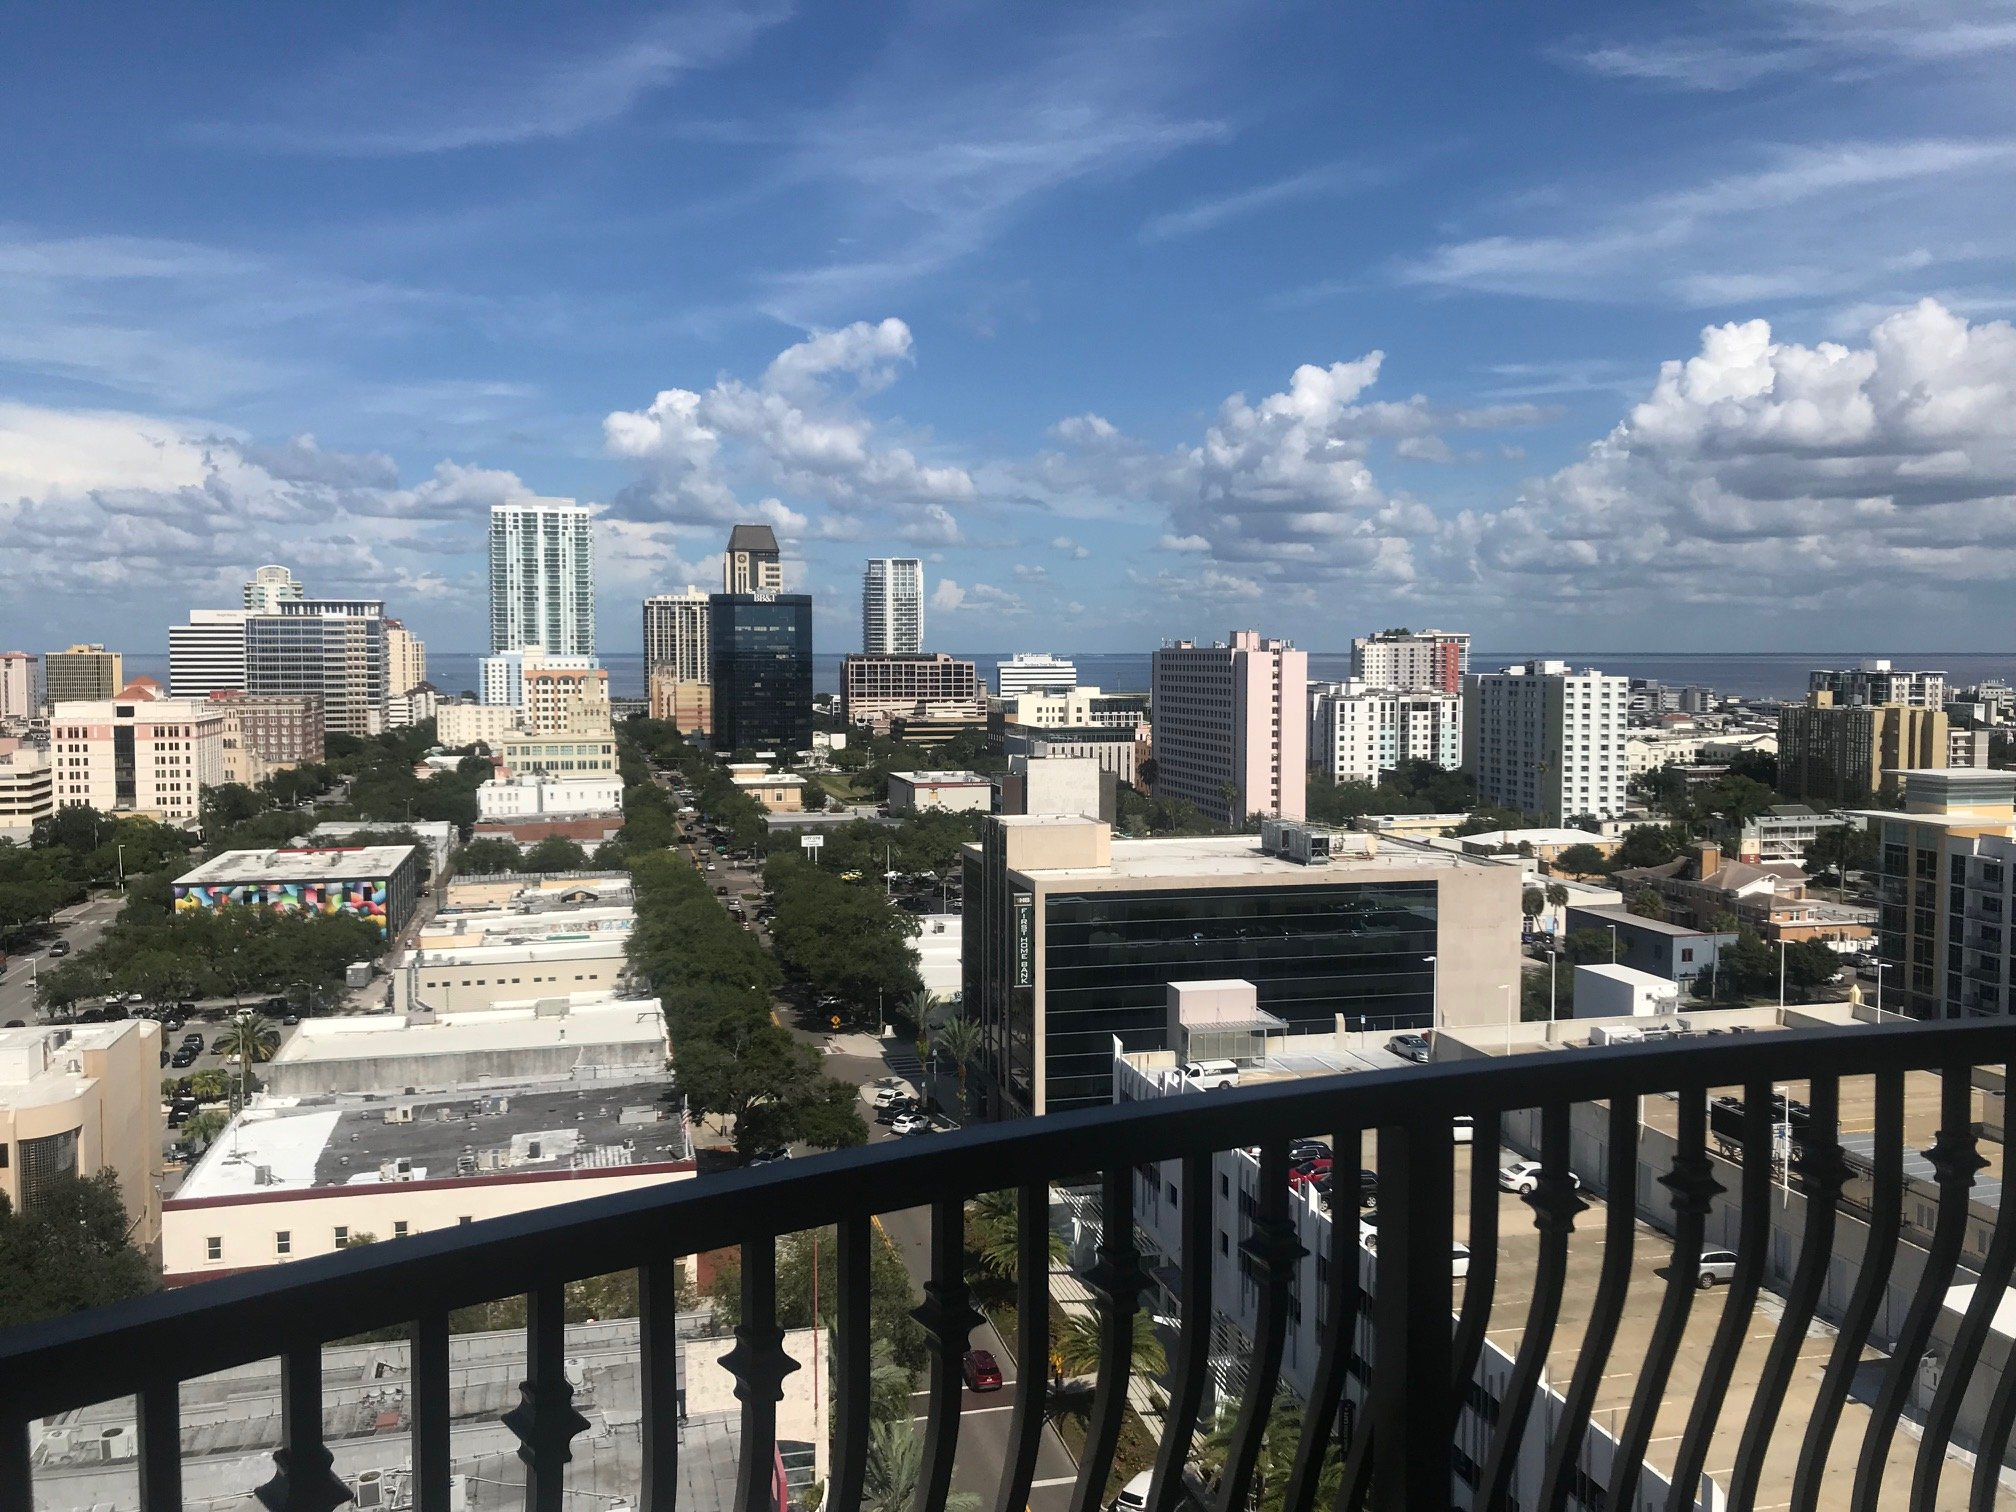 You can see the Sunshine Skyway from St. Pete's newest apartment tower. Some rents are sky-high, too.